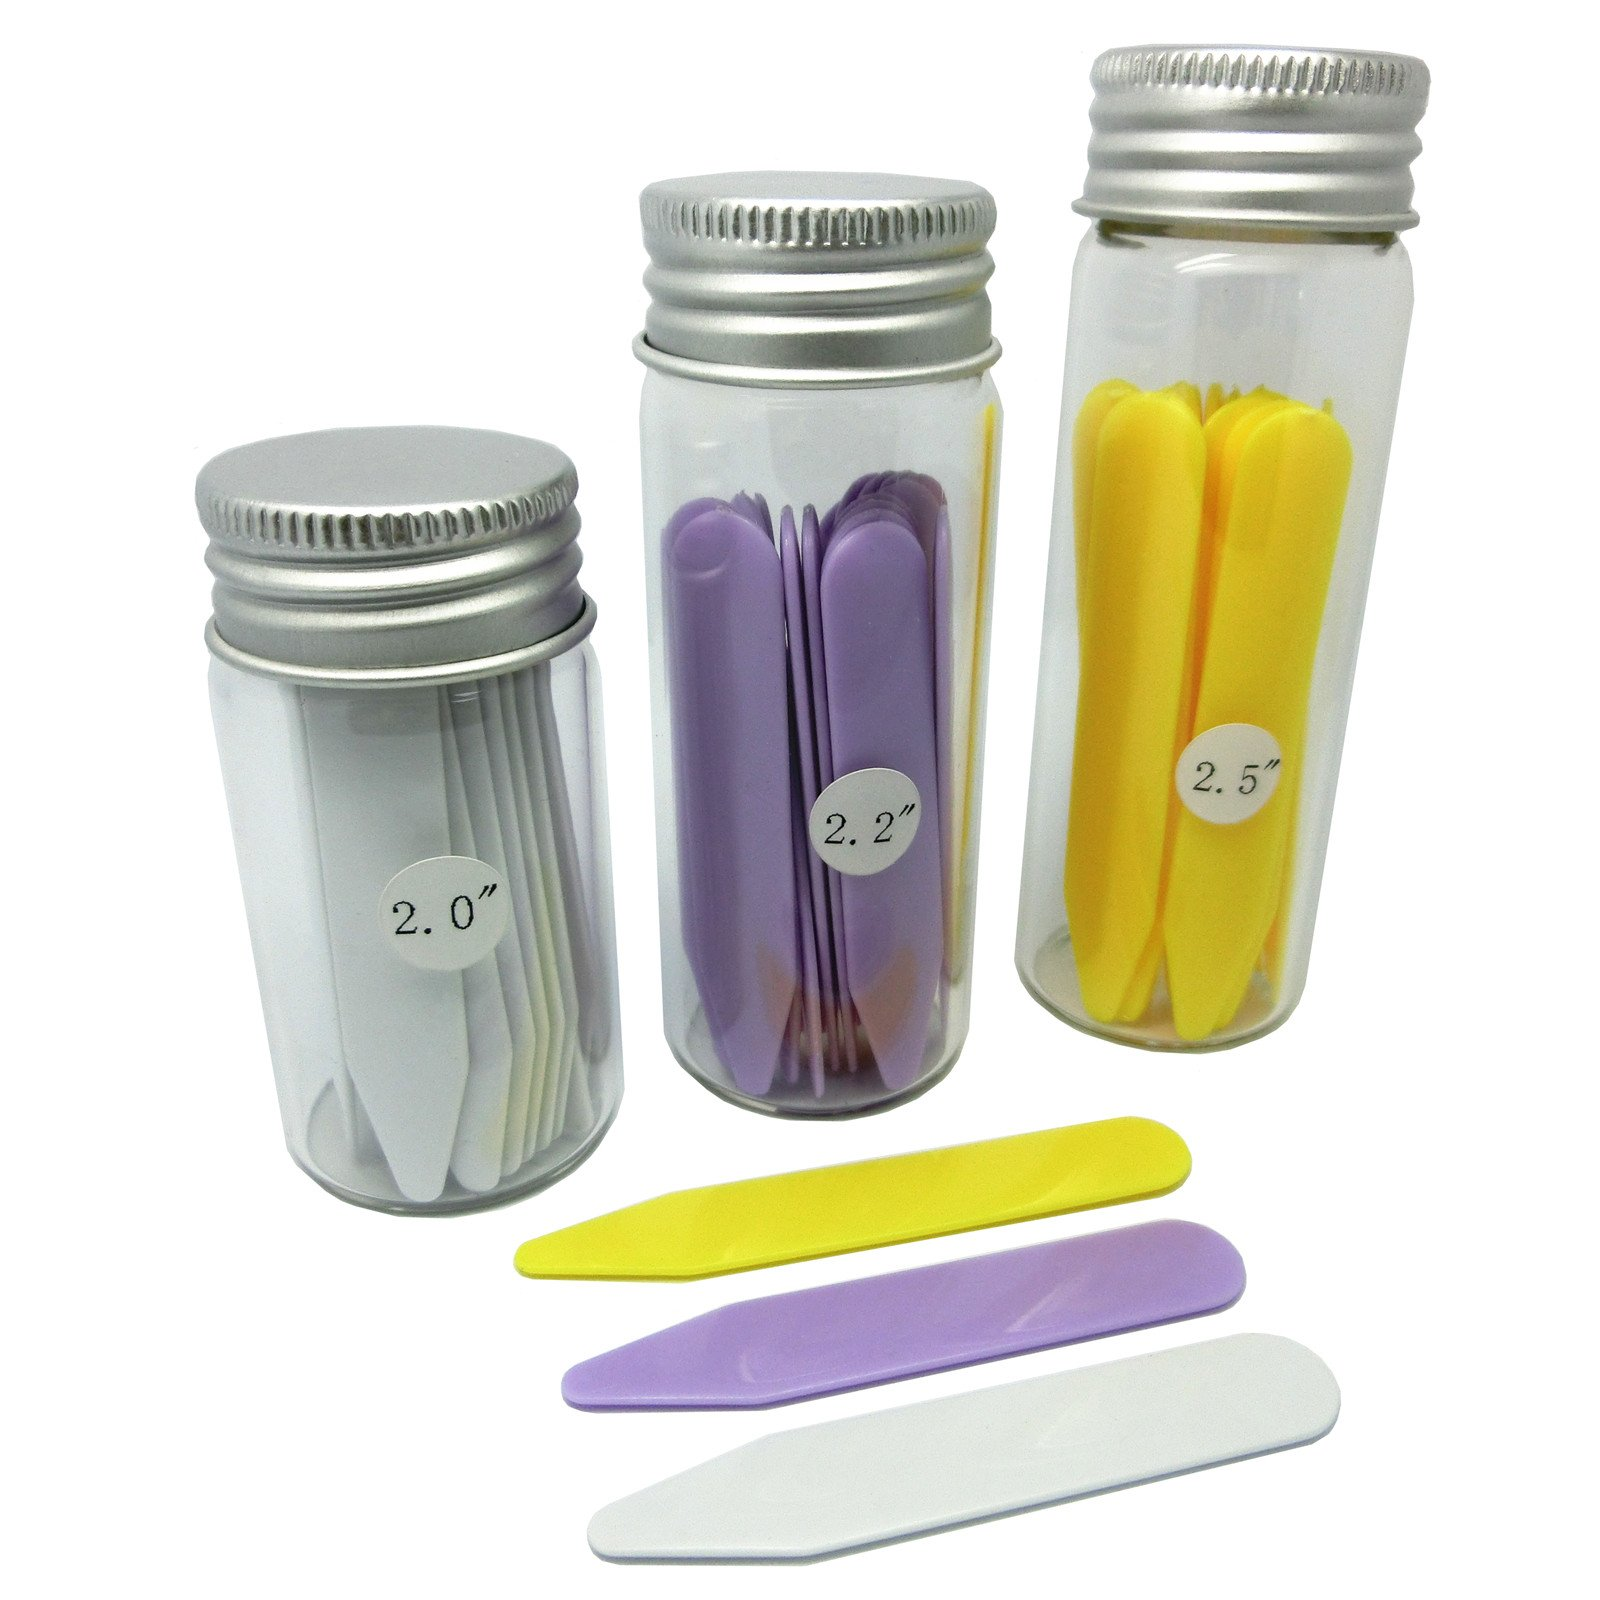 Shang Zun 48 Pcs Plastic Collar Stays in 3 Glass Bottles, 3 Sizes